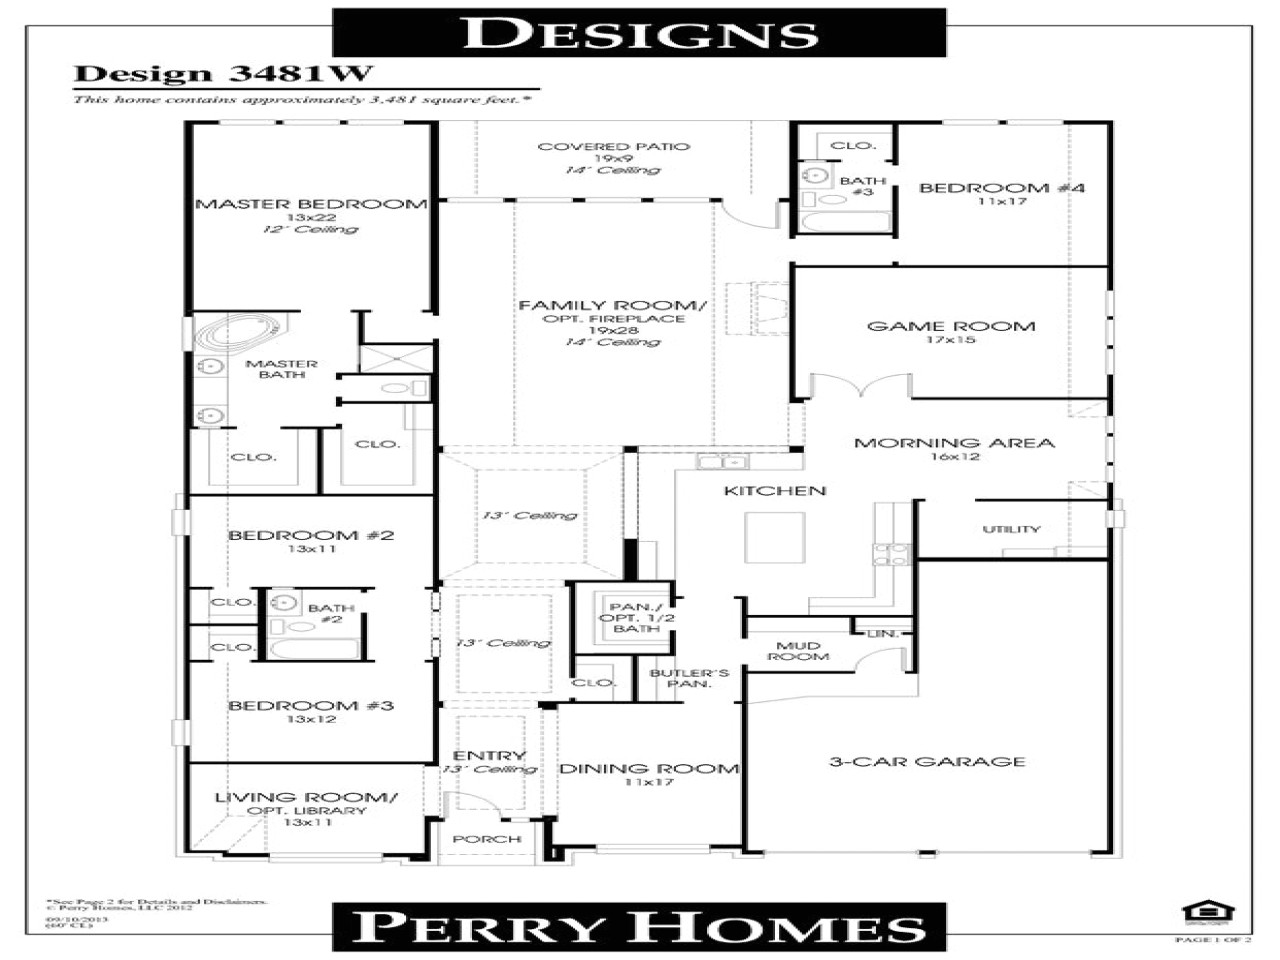 Perry Homes Floor Plans Open Floor Plans Small Home Perry Homes Floor Plans Dream